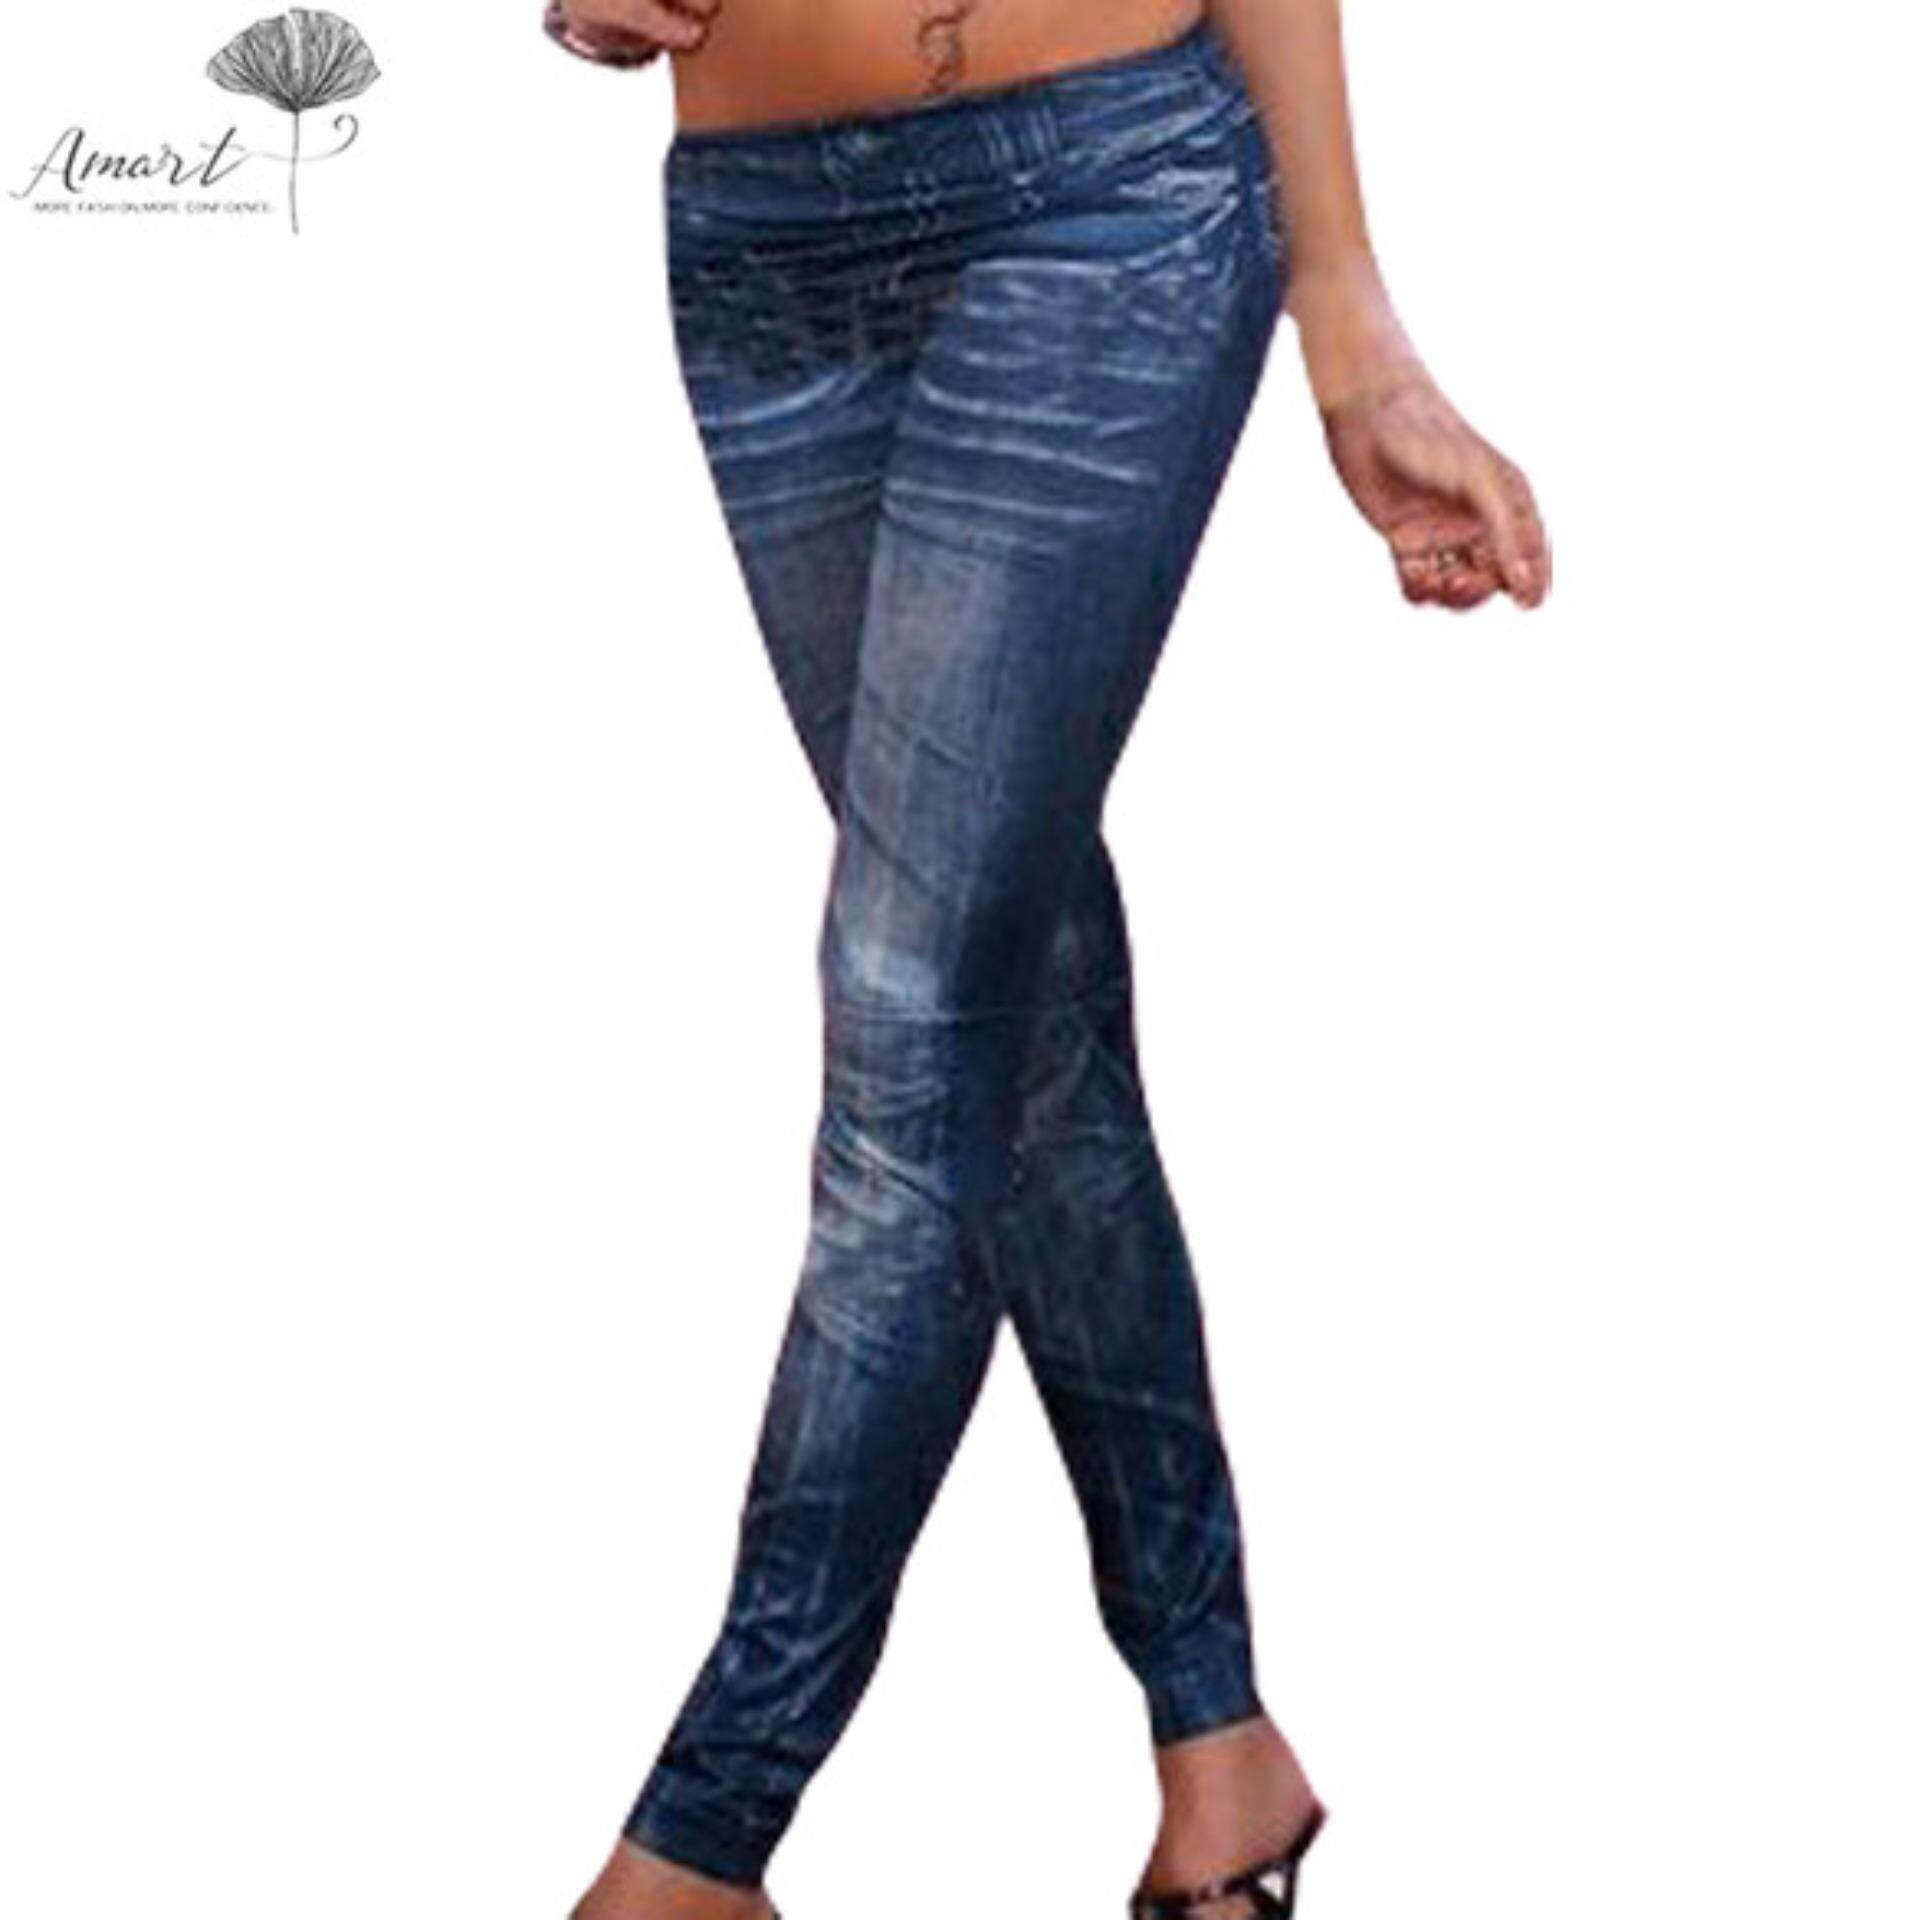 c7e36504512 Amart Stretchy Skinny Stretchy Lady s Denim Jeans Look Leggings Tights Pants